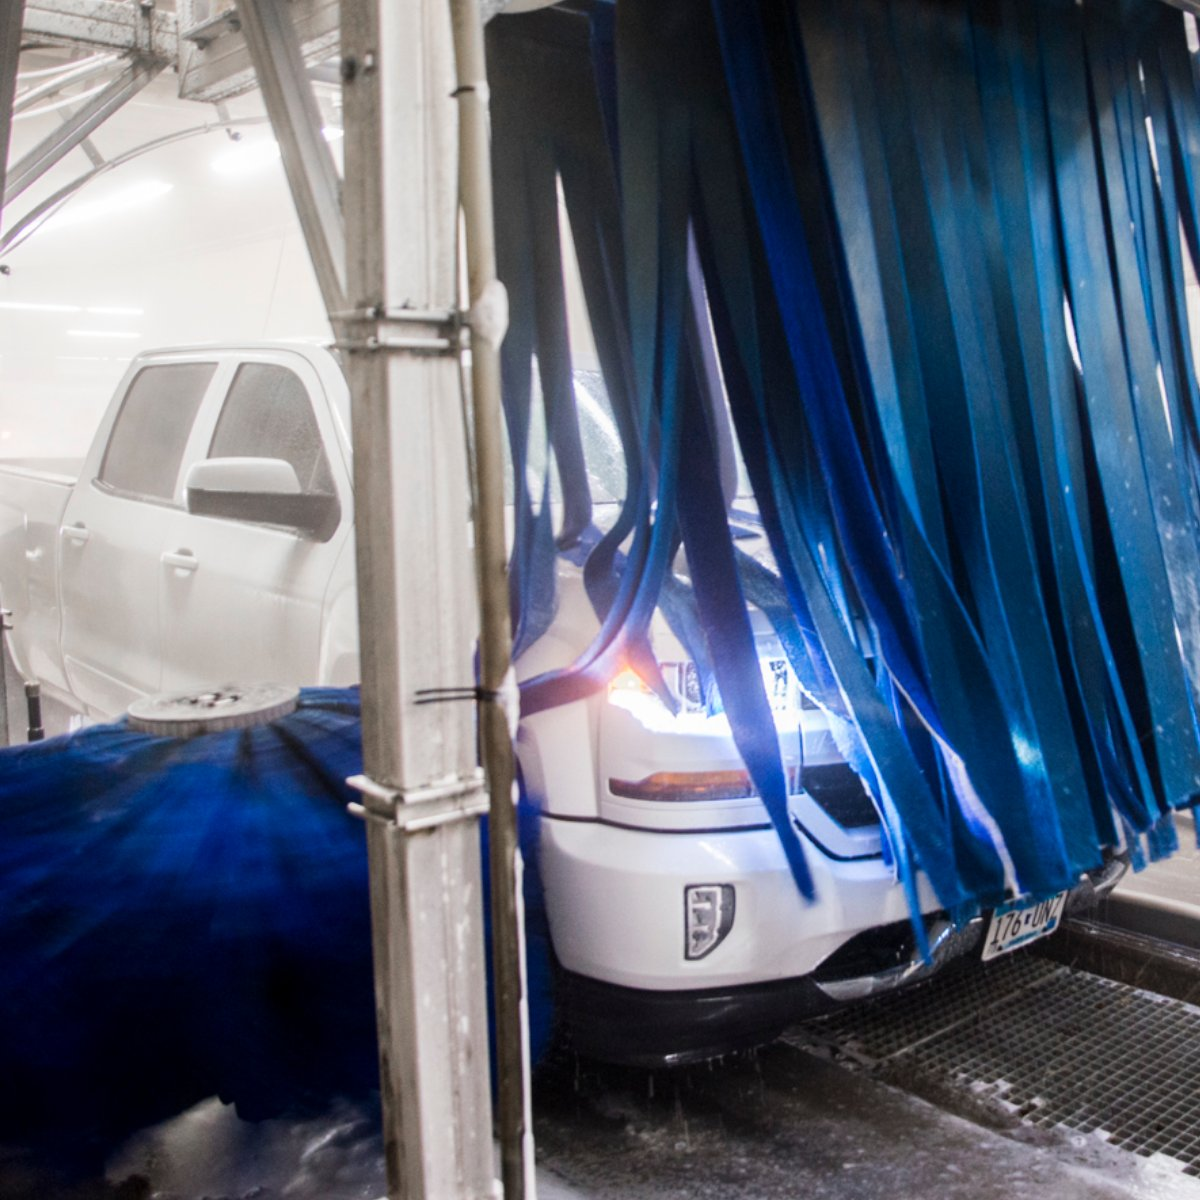 Dons car washes 13th ave donscarwashes twitter 0 replies 0 retweets 0 likes solutioingenieria Gallery